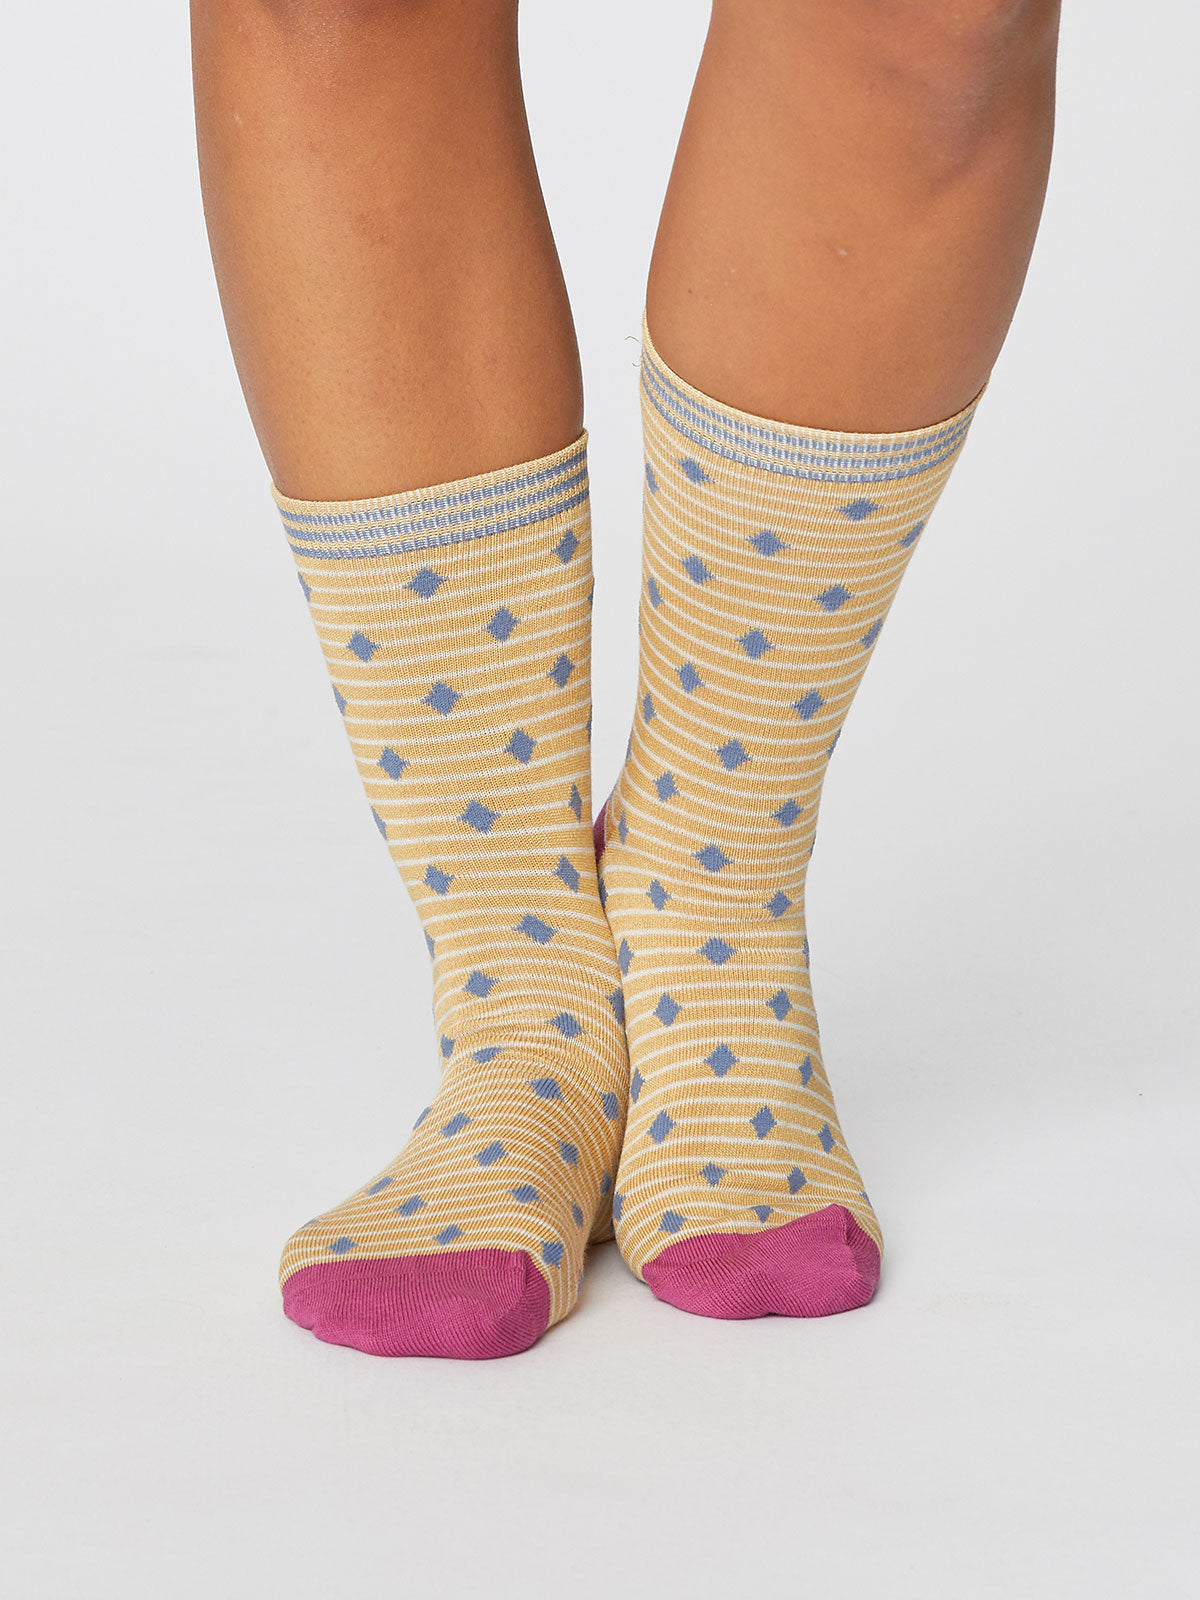 Thought Gilly Spot Socks for Ladies in Mimosa Yellow